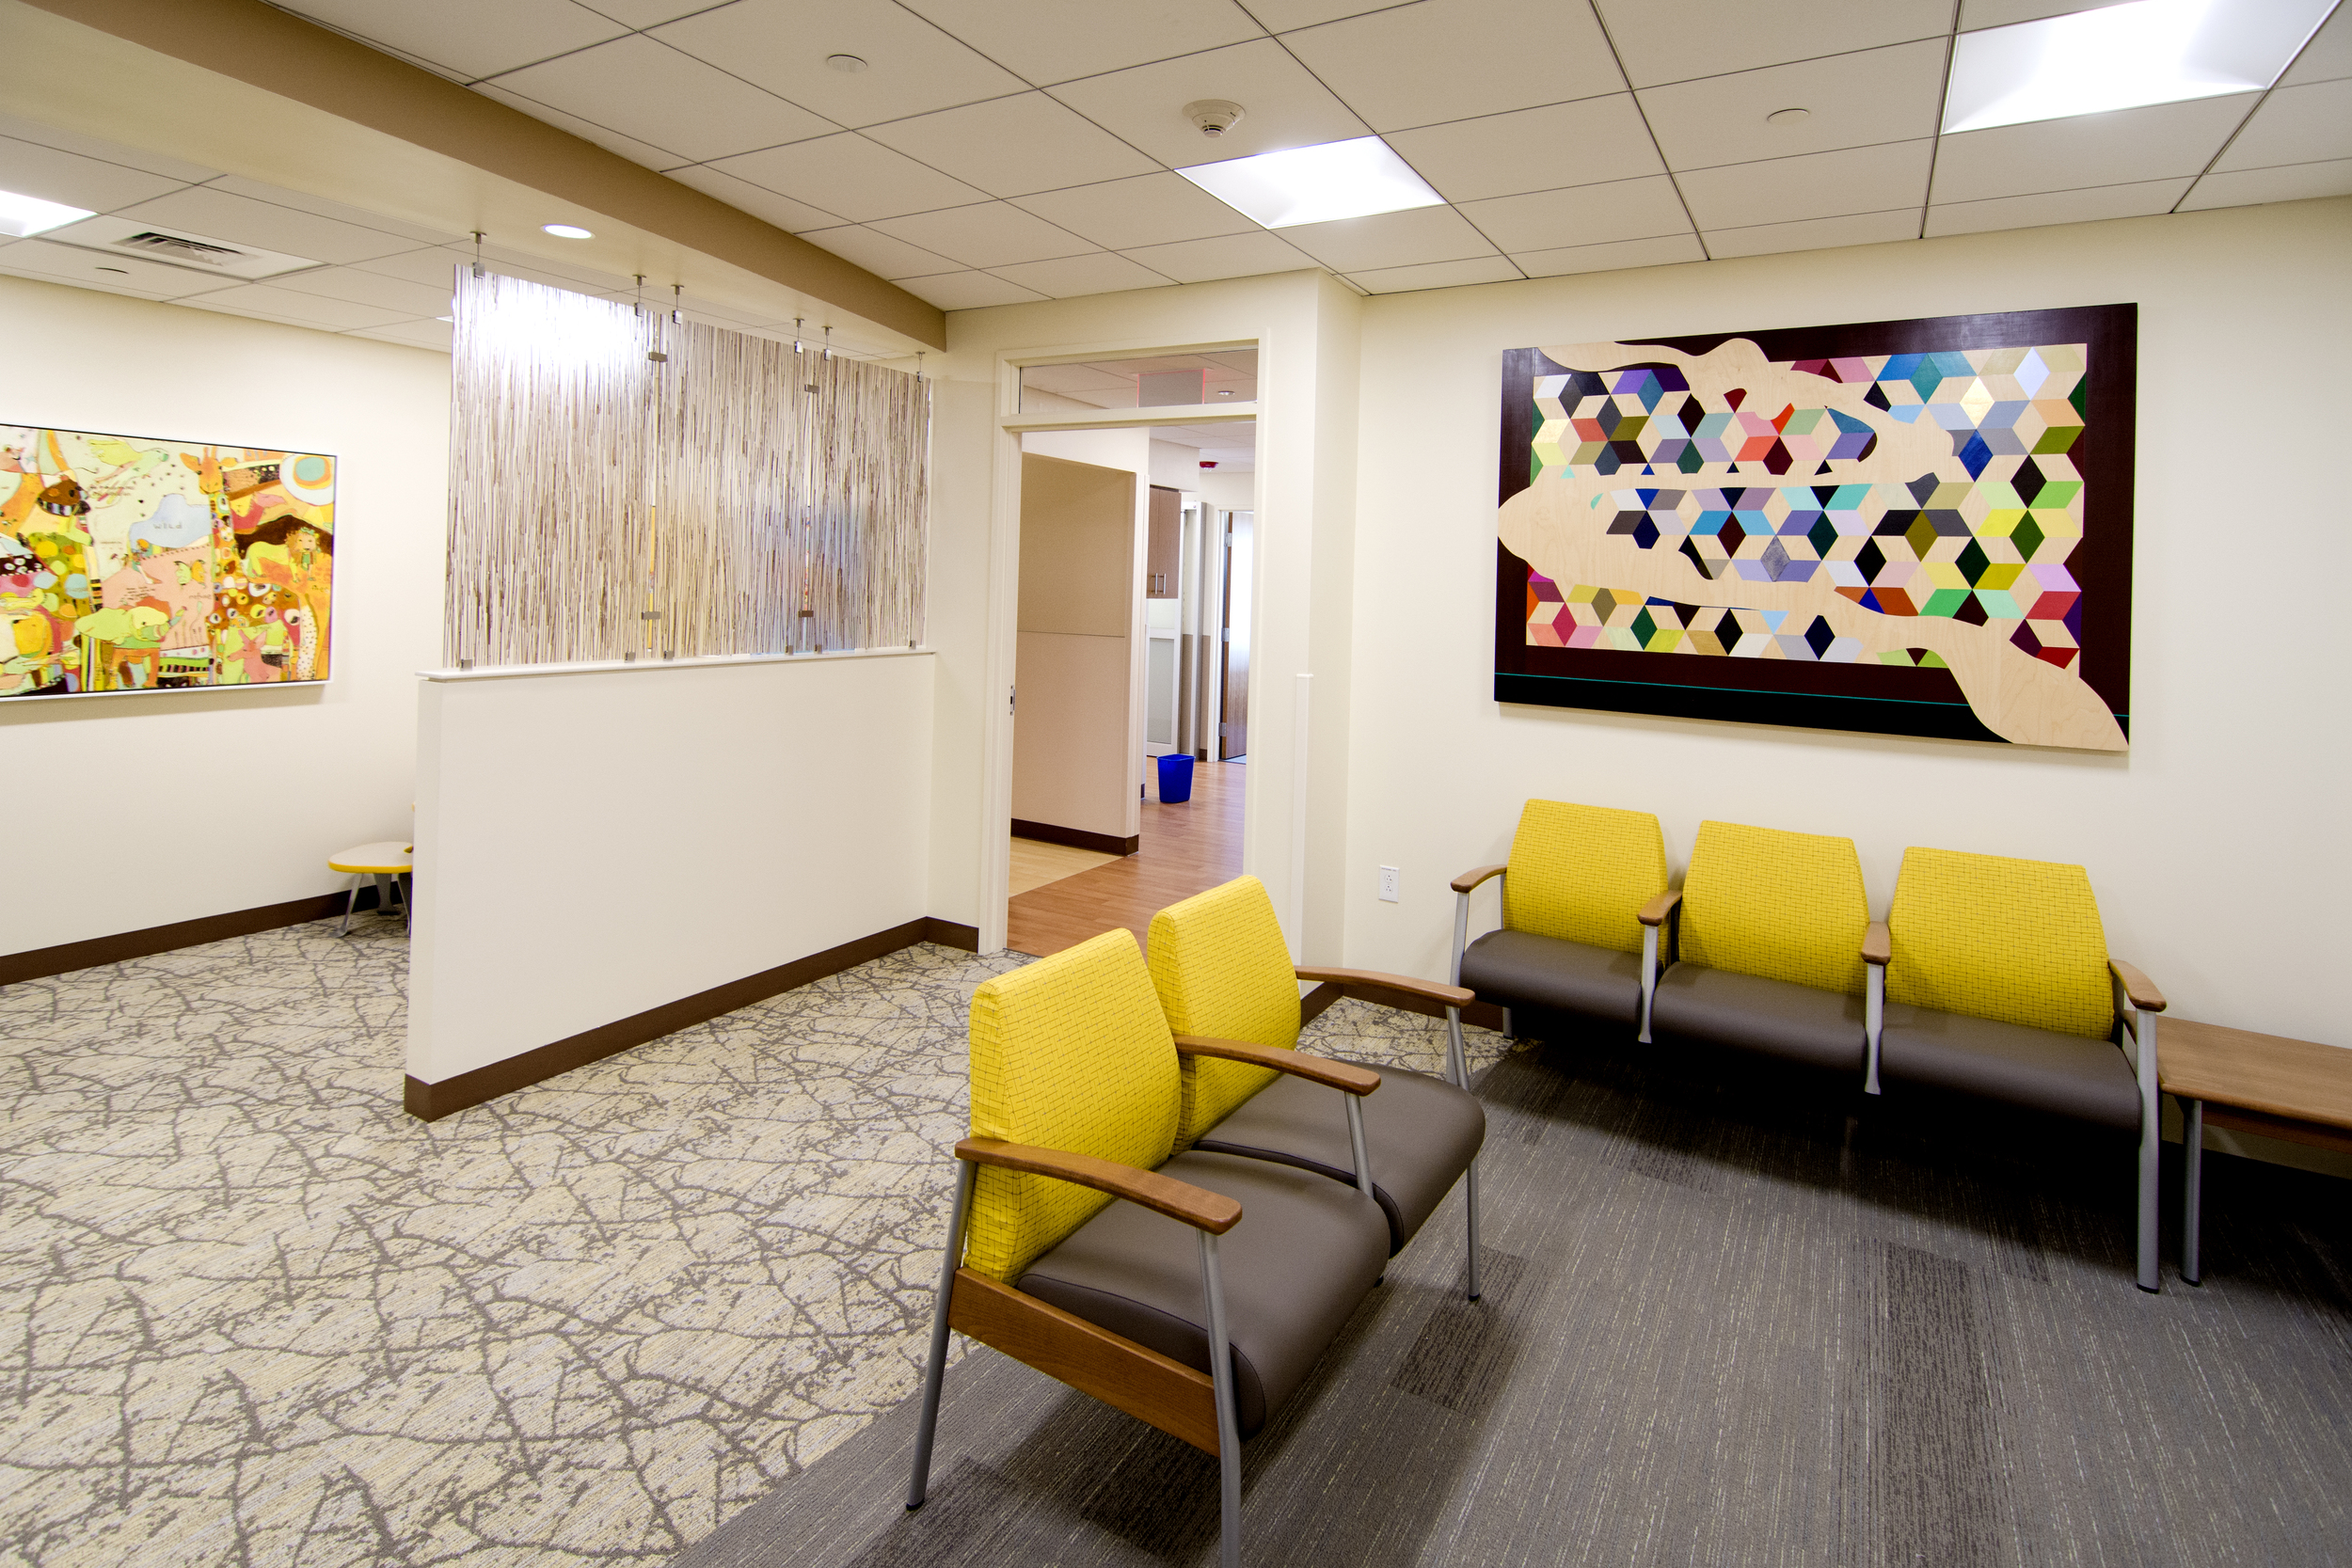 BETH ISRAEL DEACONESS MEDICAL CENTER | CHESTNUT HILL, MA